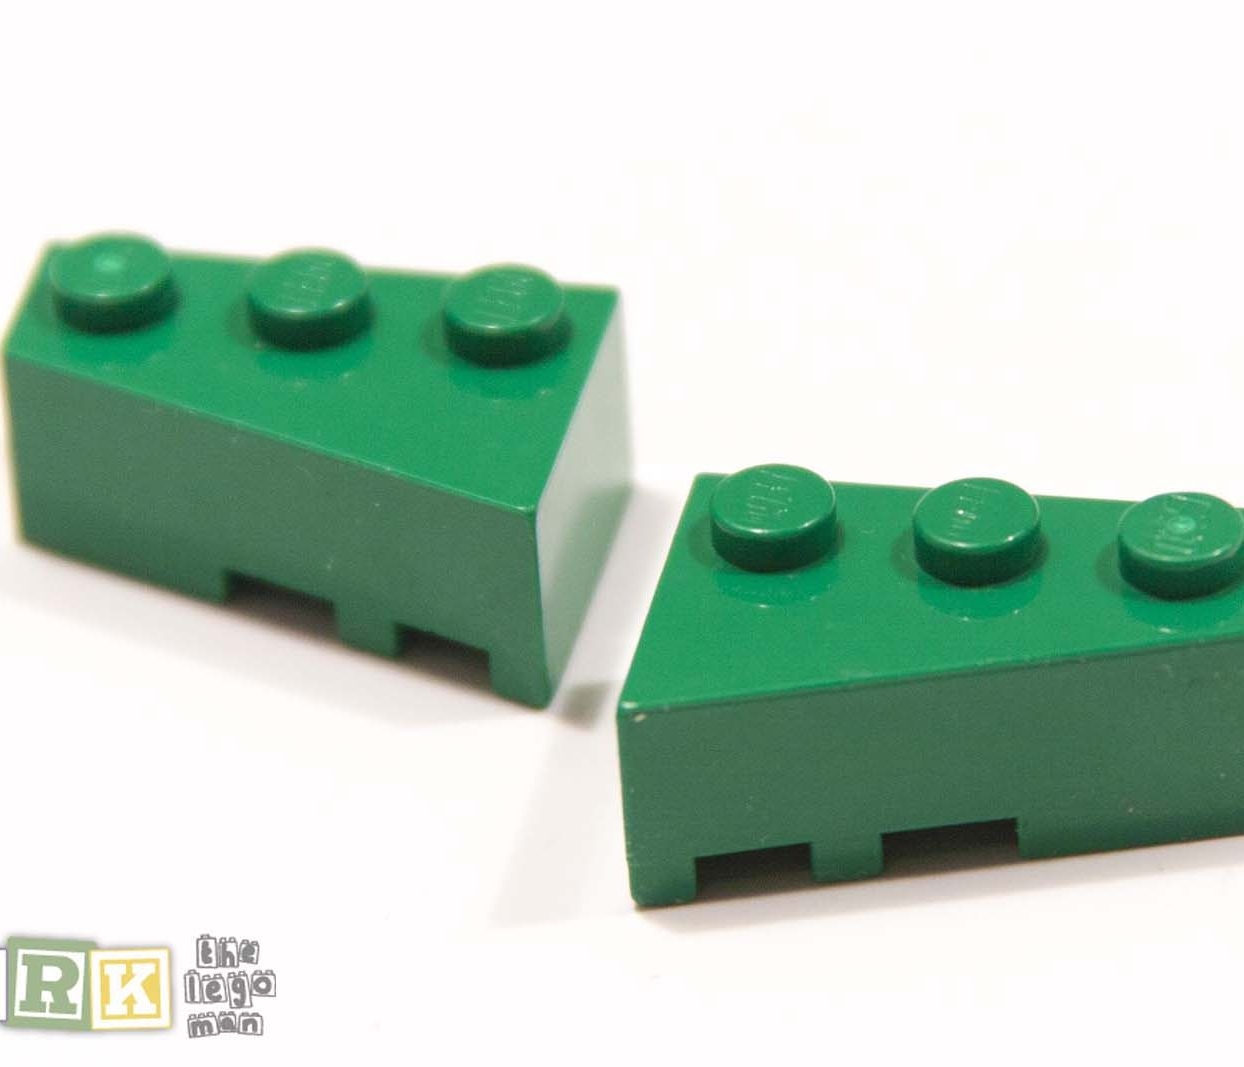 Lego Green Wedge Right 6564 Wedge Left 6565